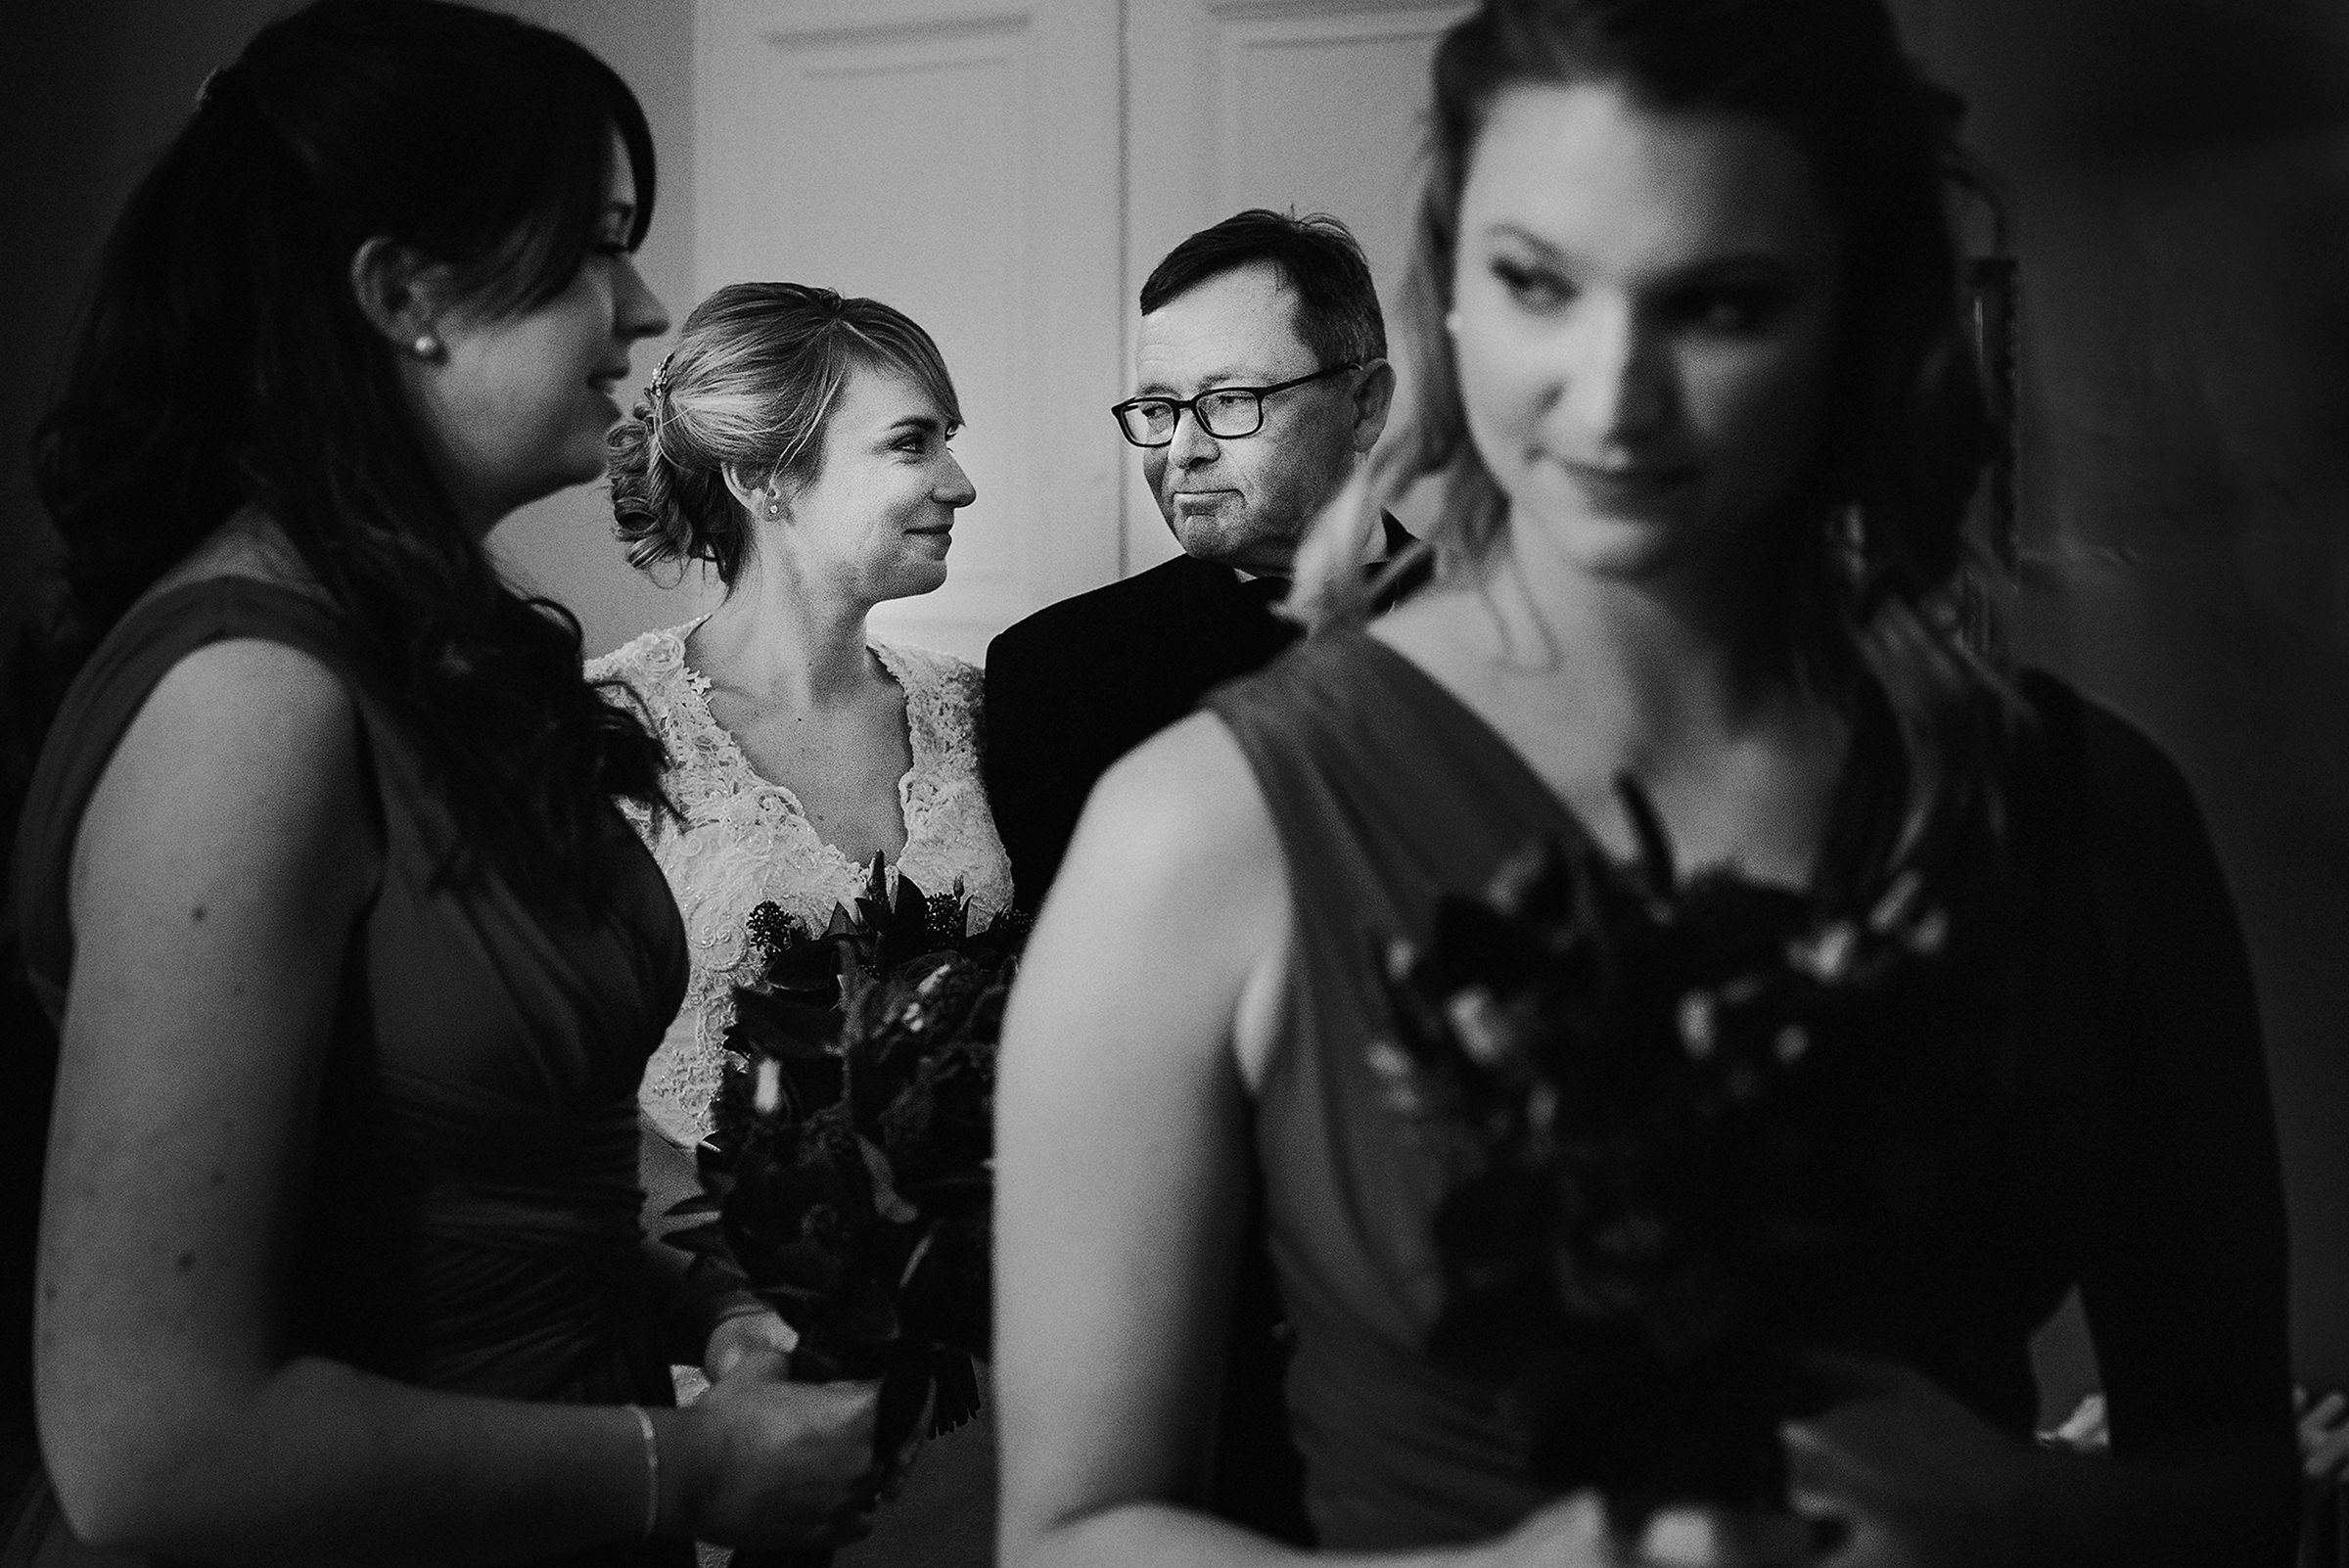 Bride and father sharing a moment amidst other guests - photo by Andy Gaines Photography